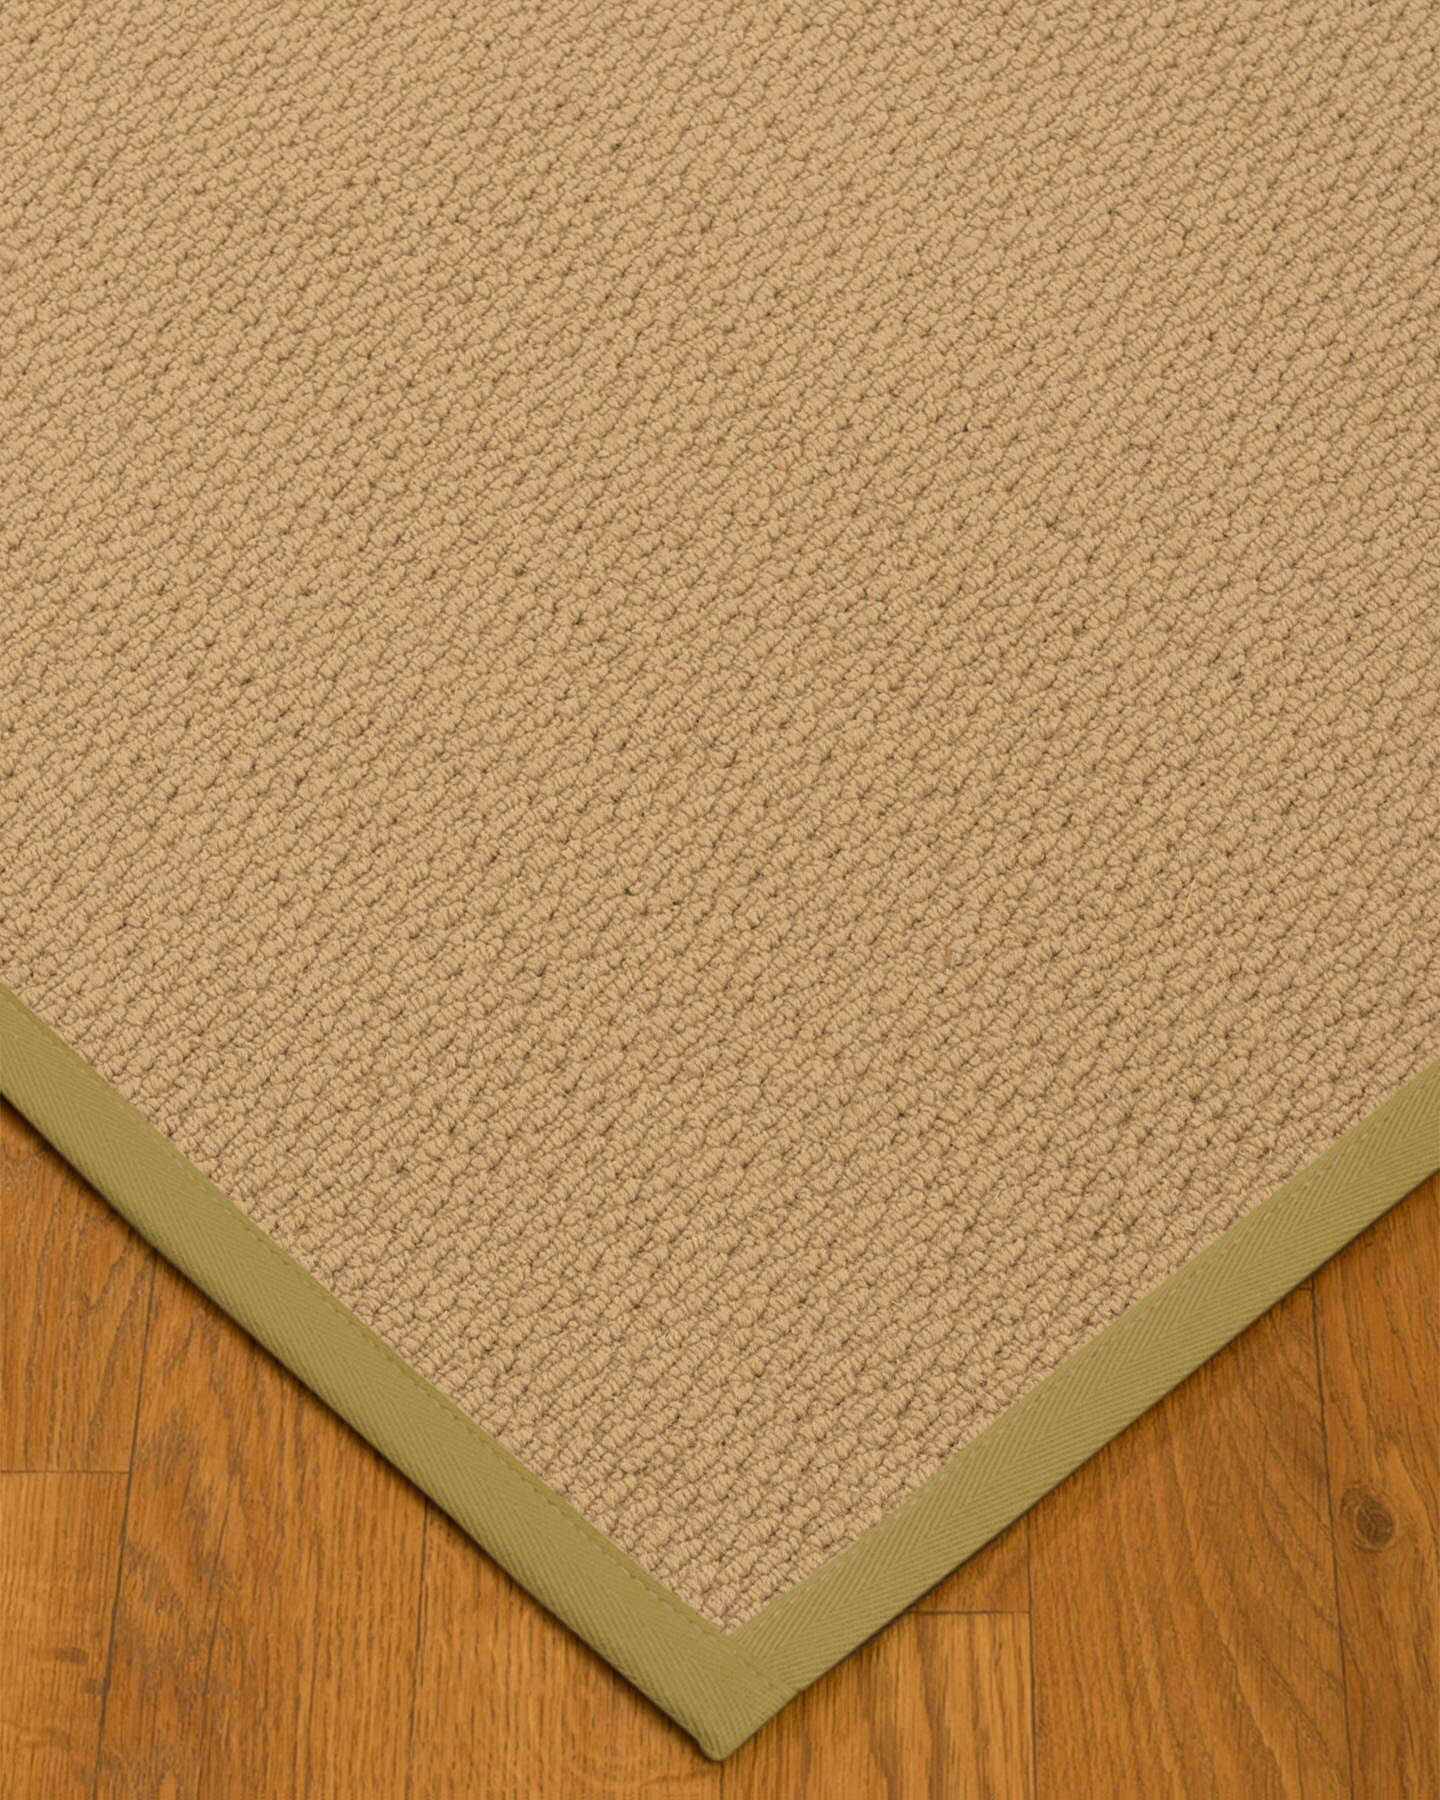 Chea Border Hand-Woven Wool Beige/Natural Area Rug Rug Size: Rectangle 4' x 6', Rug Pad Included: Yes